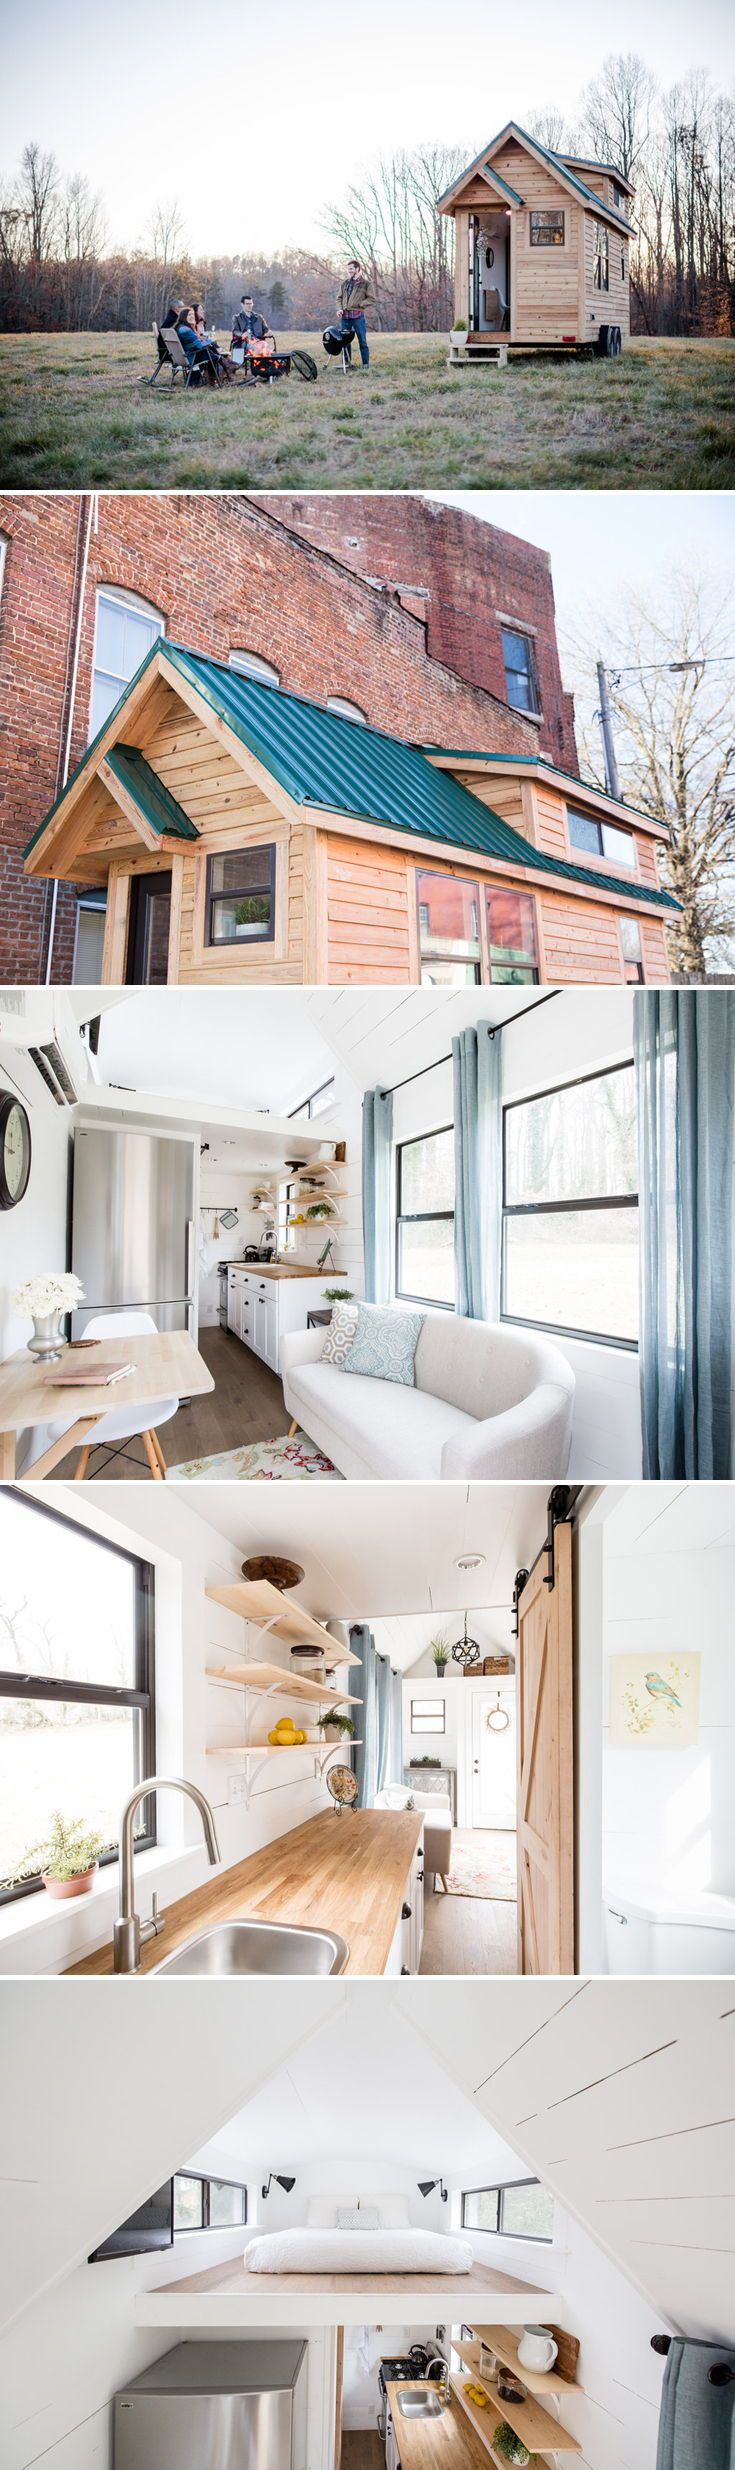 Lindley by Tiny Life Construction | Tiny Homes | Pinterest ...